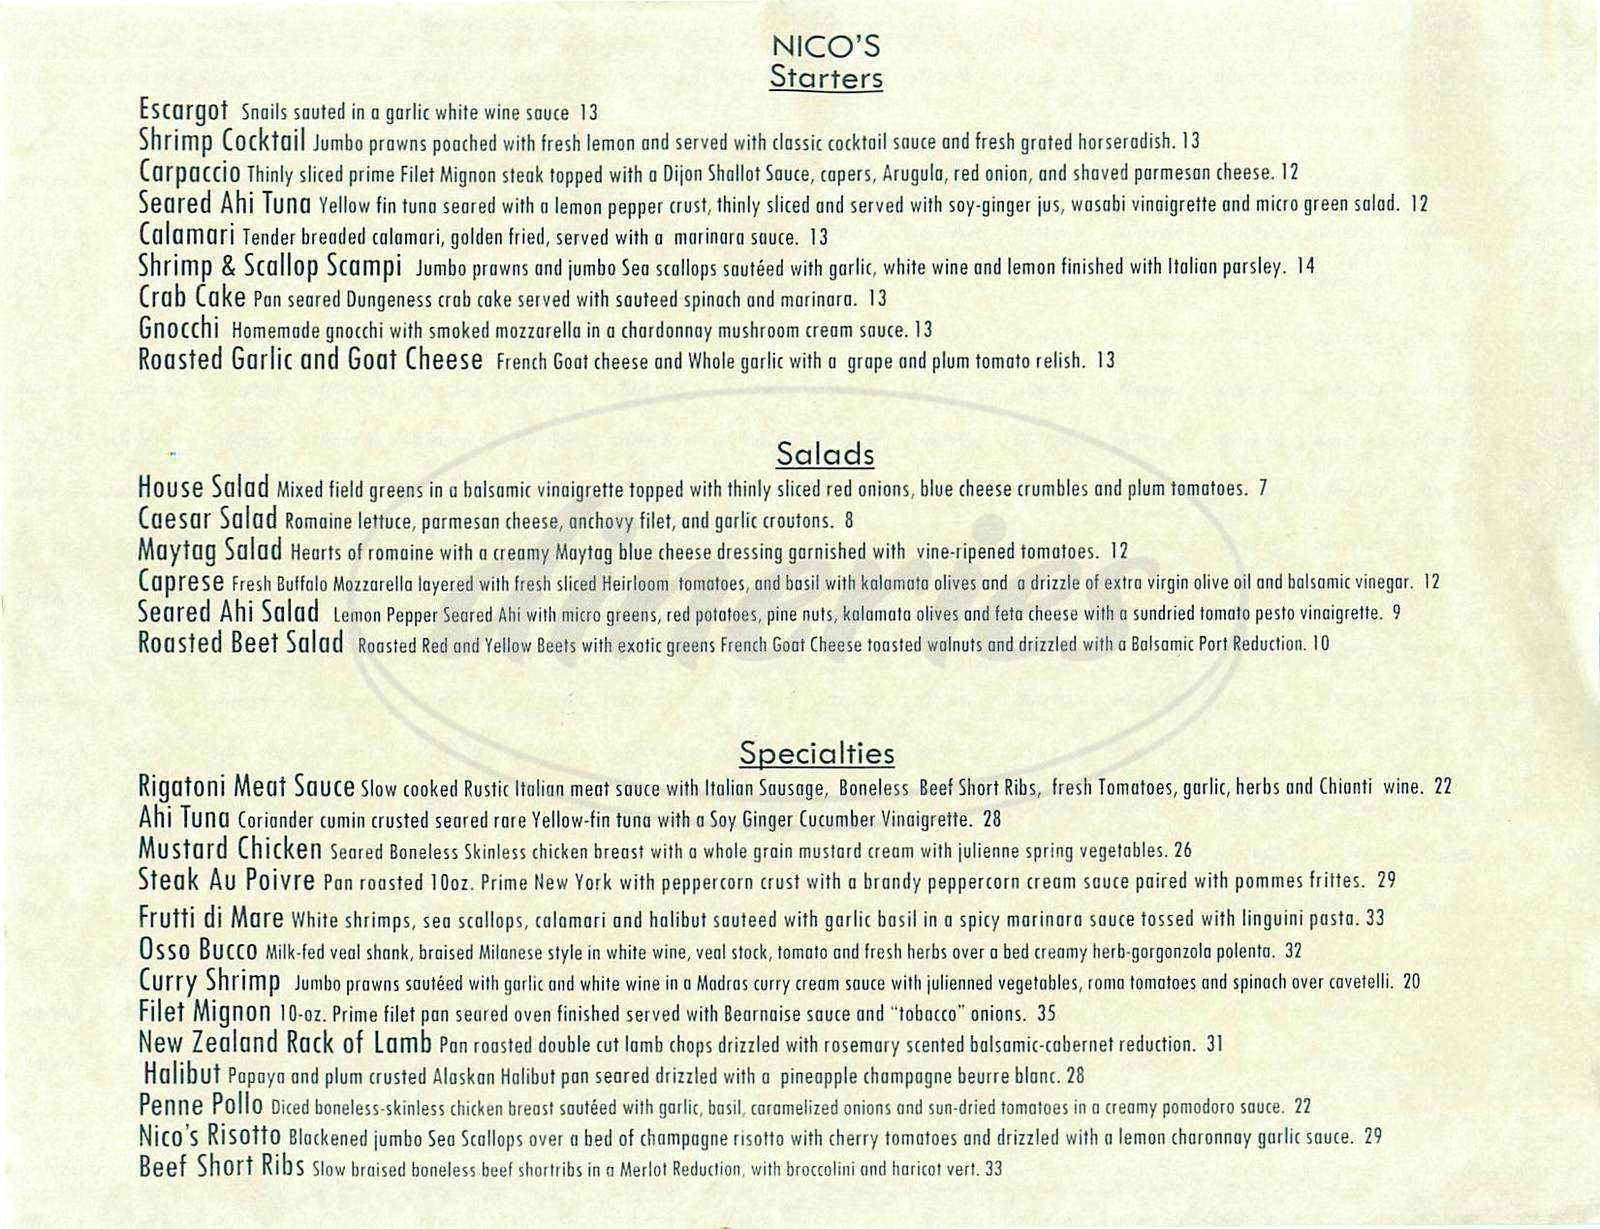 menu for Nico's